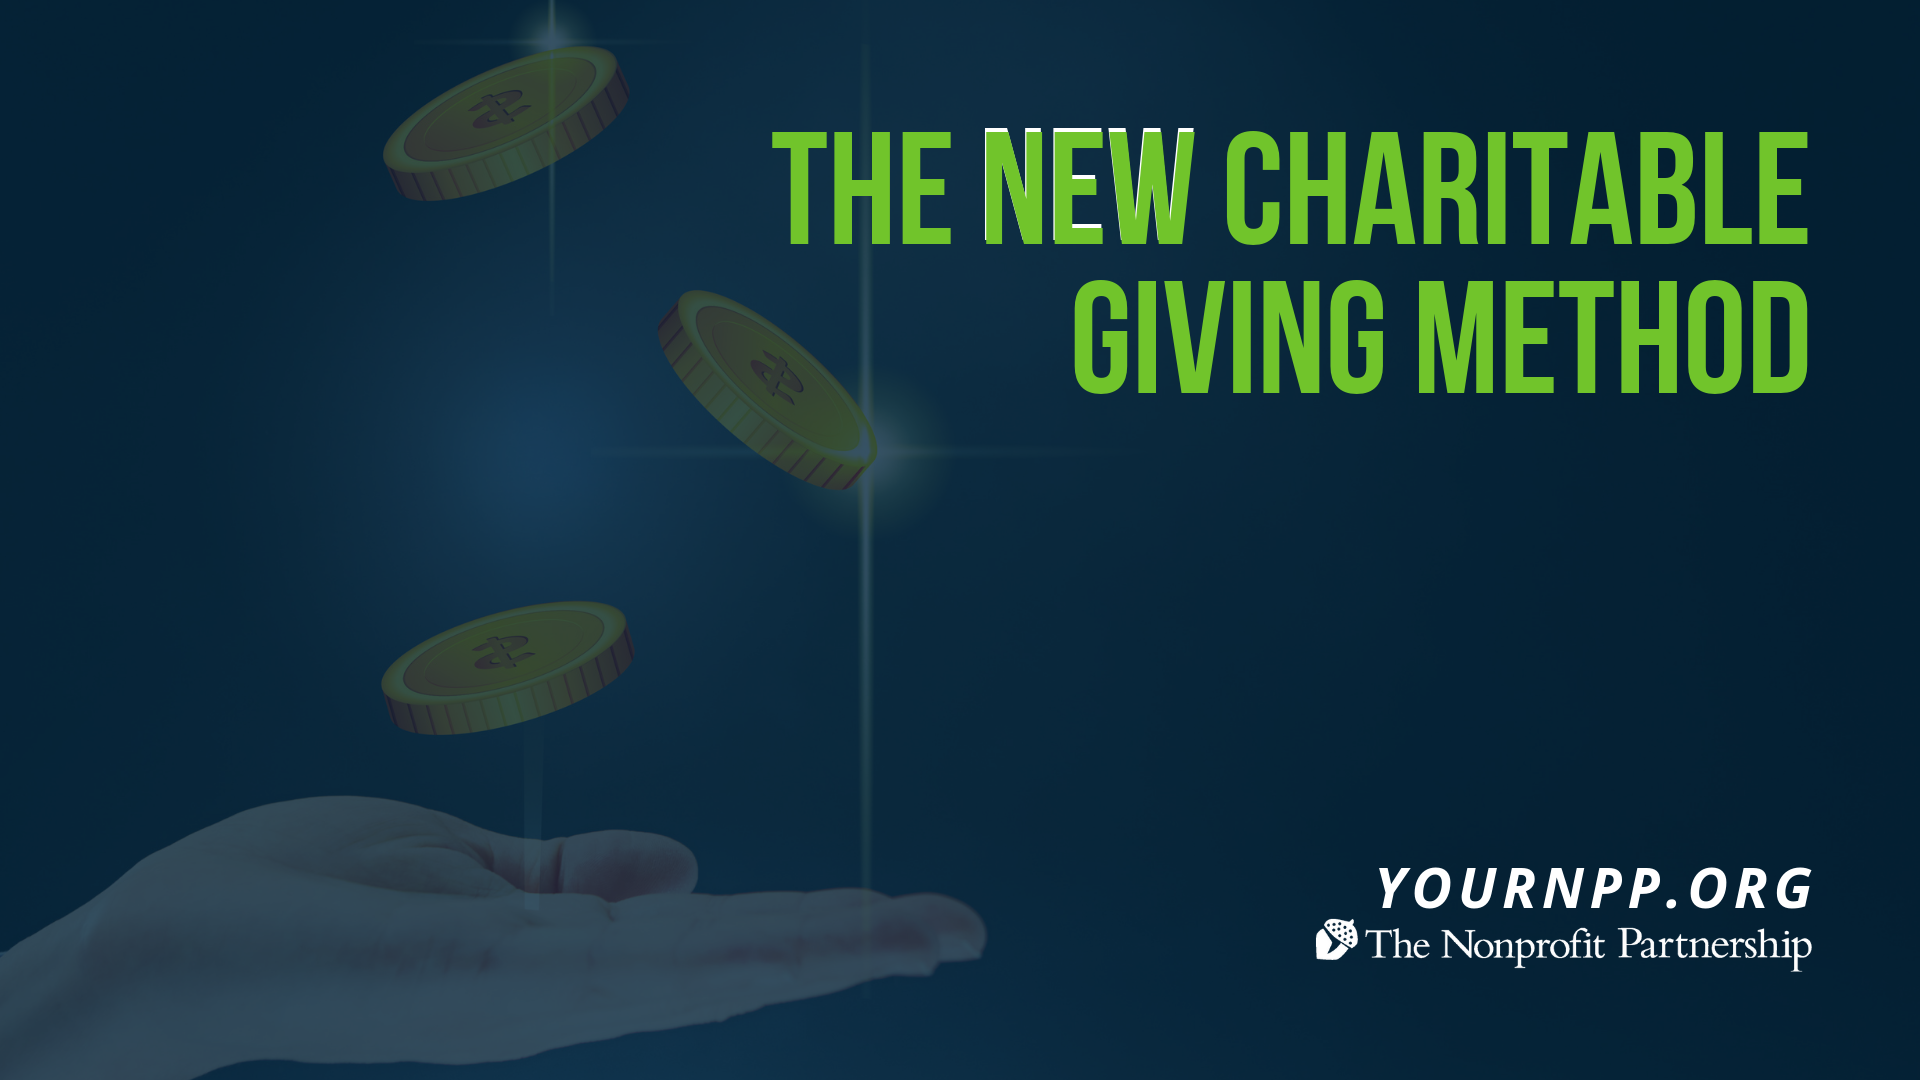 The New Charitable Giving Method